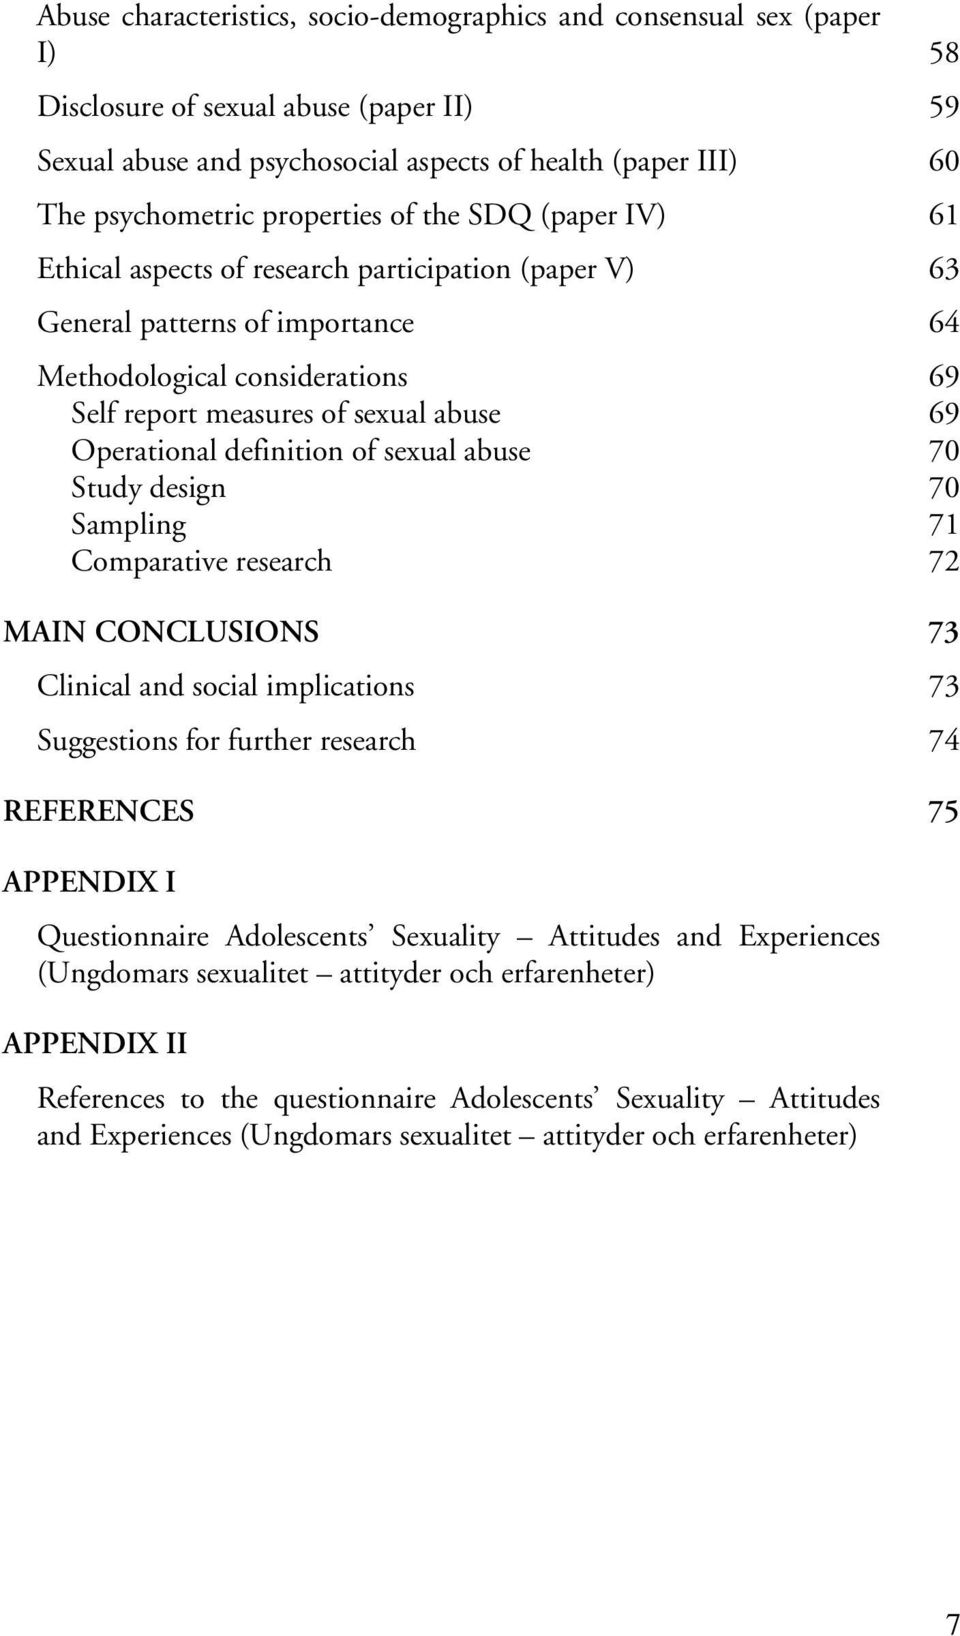 Operational definition of sexual abuse 70 Study design 70 Sampling 71 Comparative research 72 MAIN CONCLUSIONS 73 Clinical and social implications 73 Suggestions for further research 74 REFERENCES 75